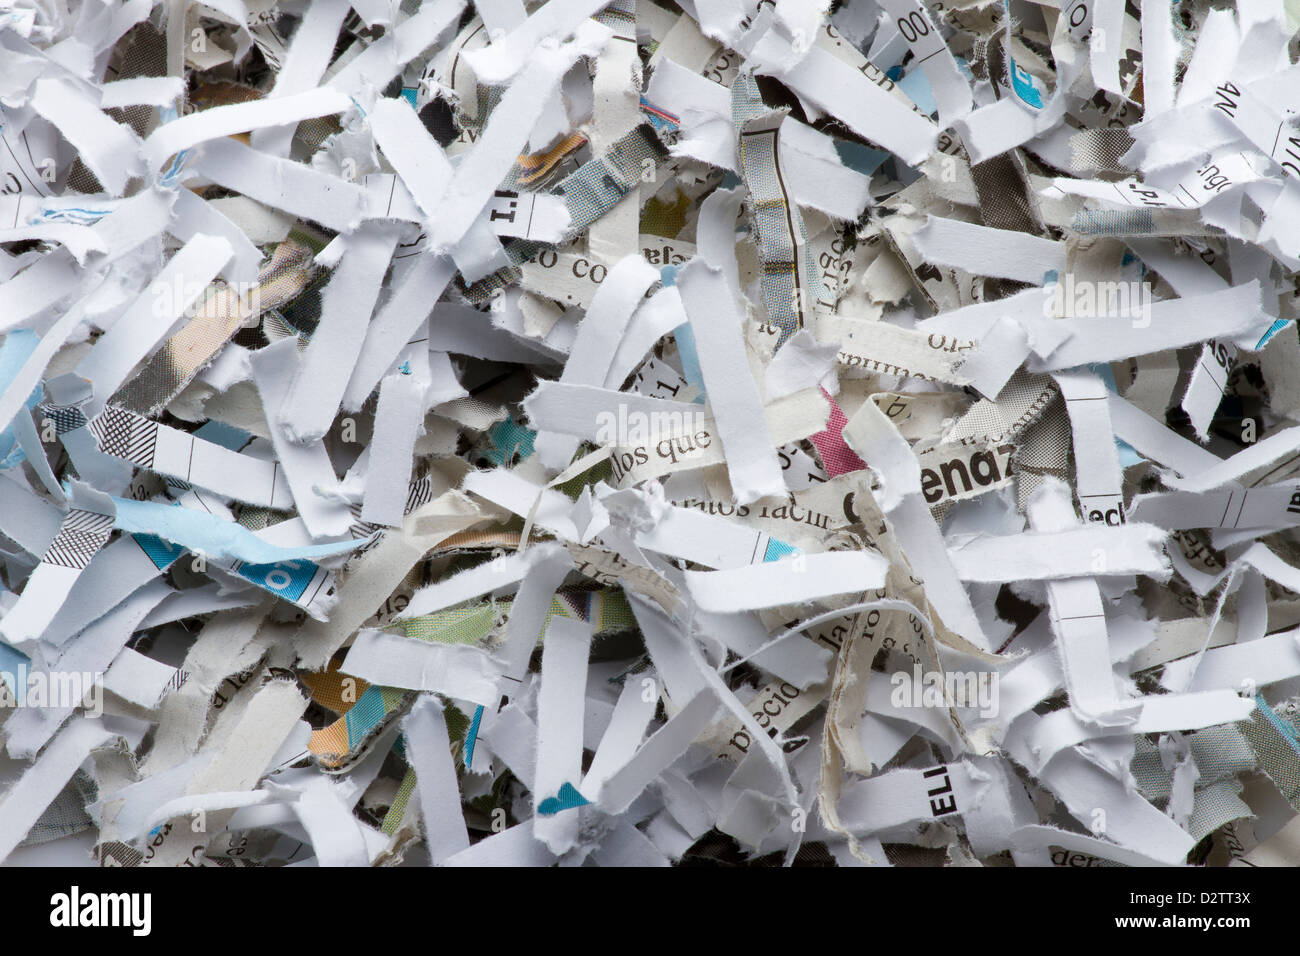 Pile of shredded paper - Stock Image